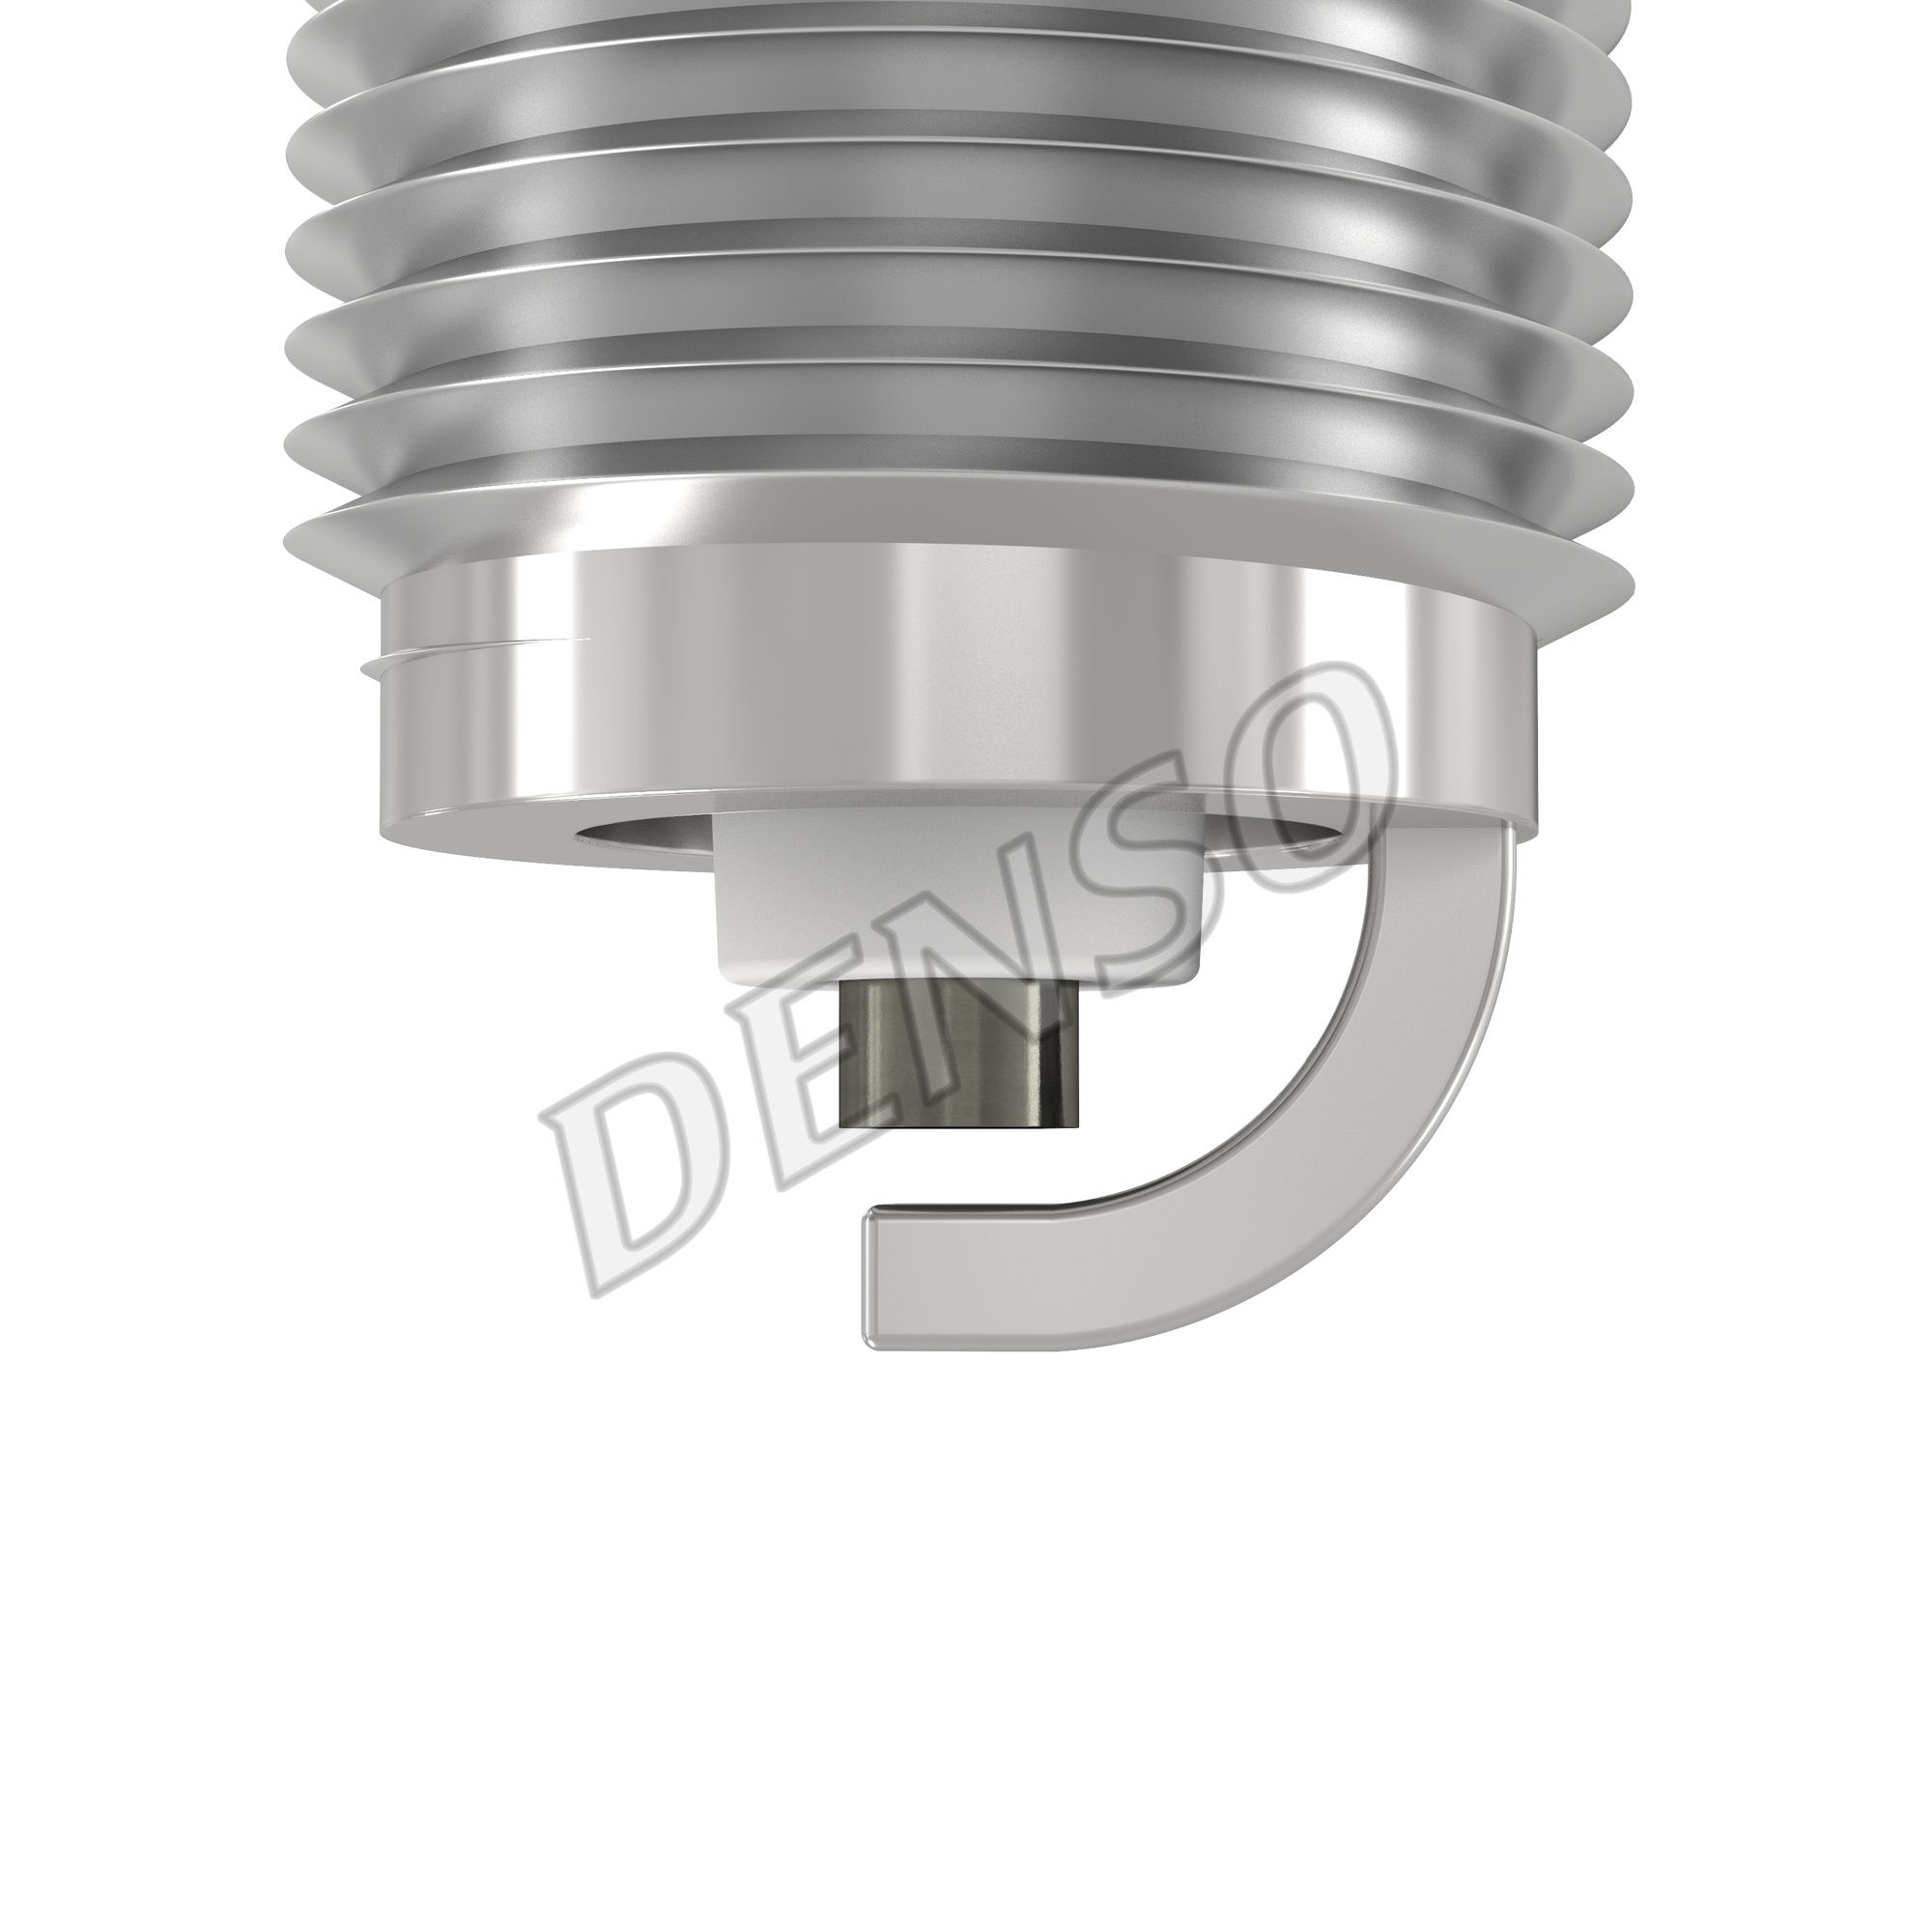 ALFA ROMEO SPIDER 2002 replacement parts: Spark Plug DENSO W20EPR-U at a discount — buy now!